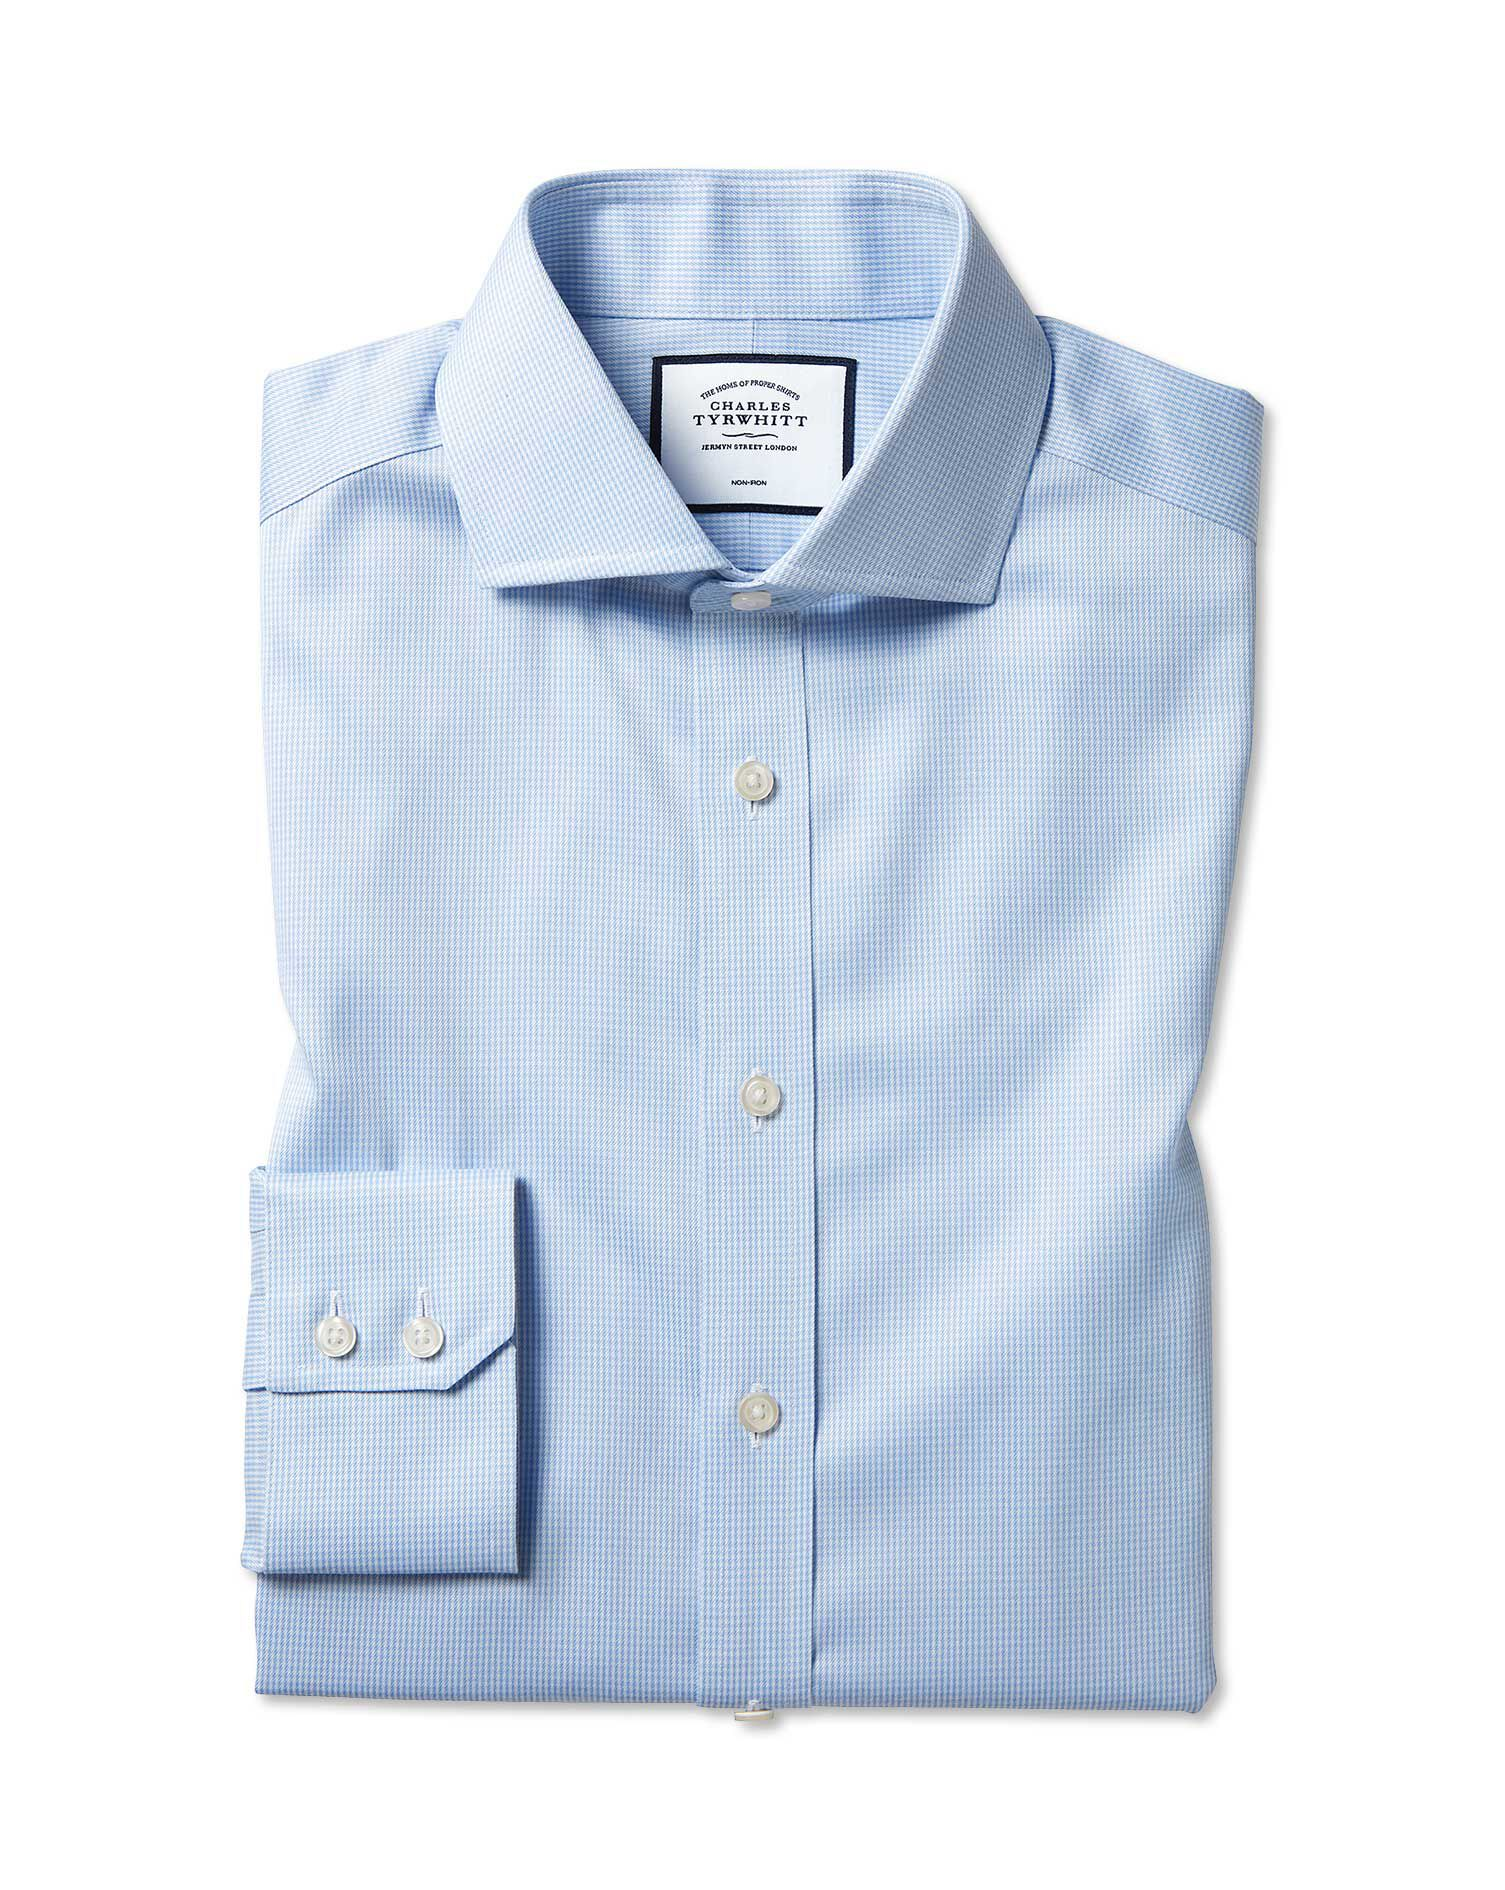 Slim Fit Cutaway Non-Iron Puppytooth Sky Blue Cotton Formal Shirt Single Cuff Size 16.5/35 by Charle